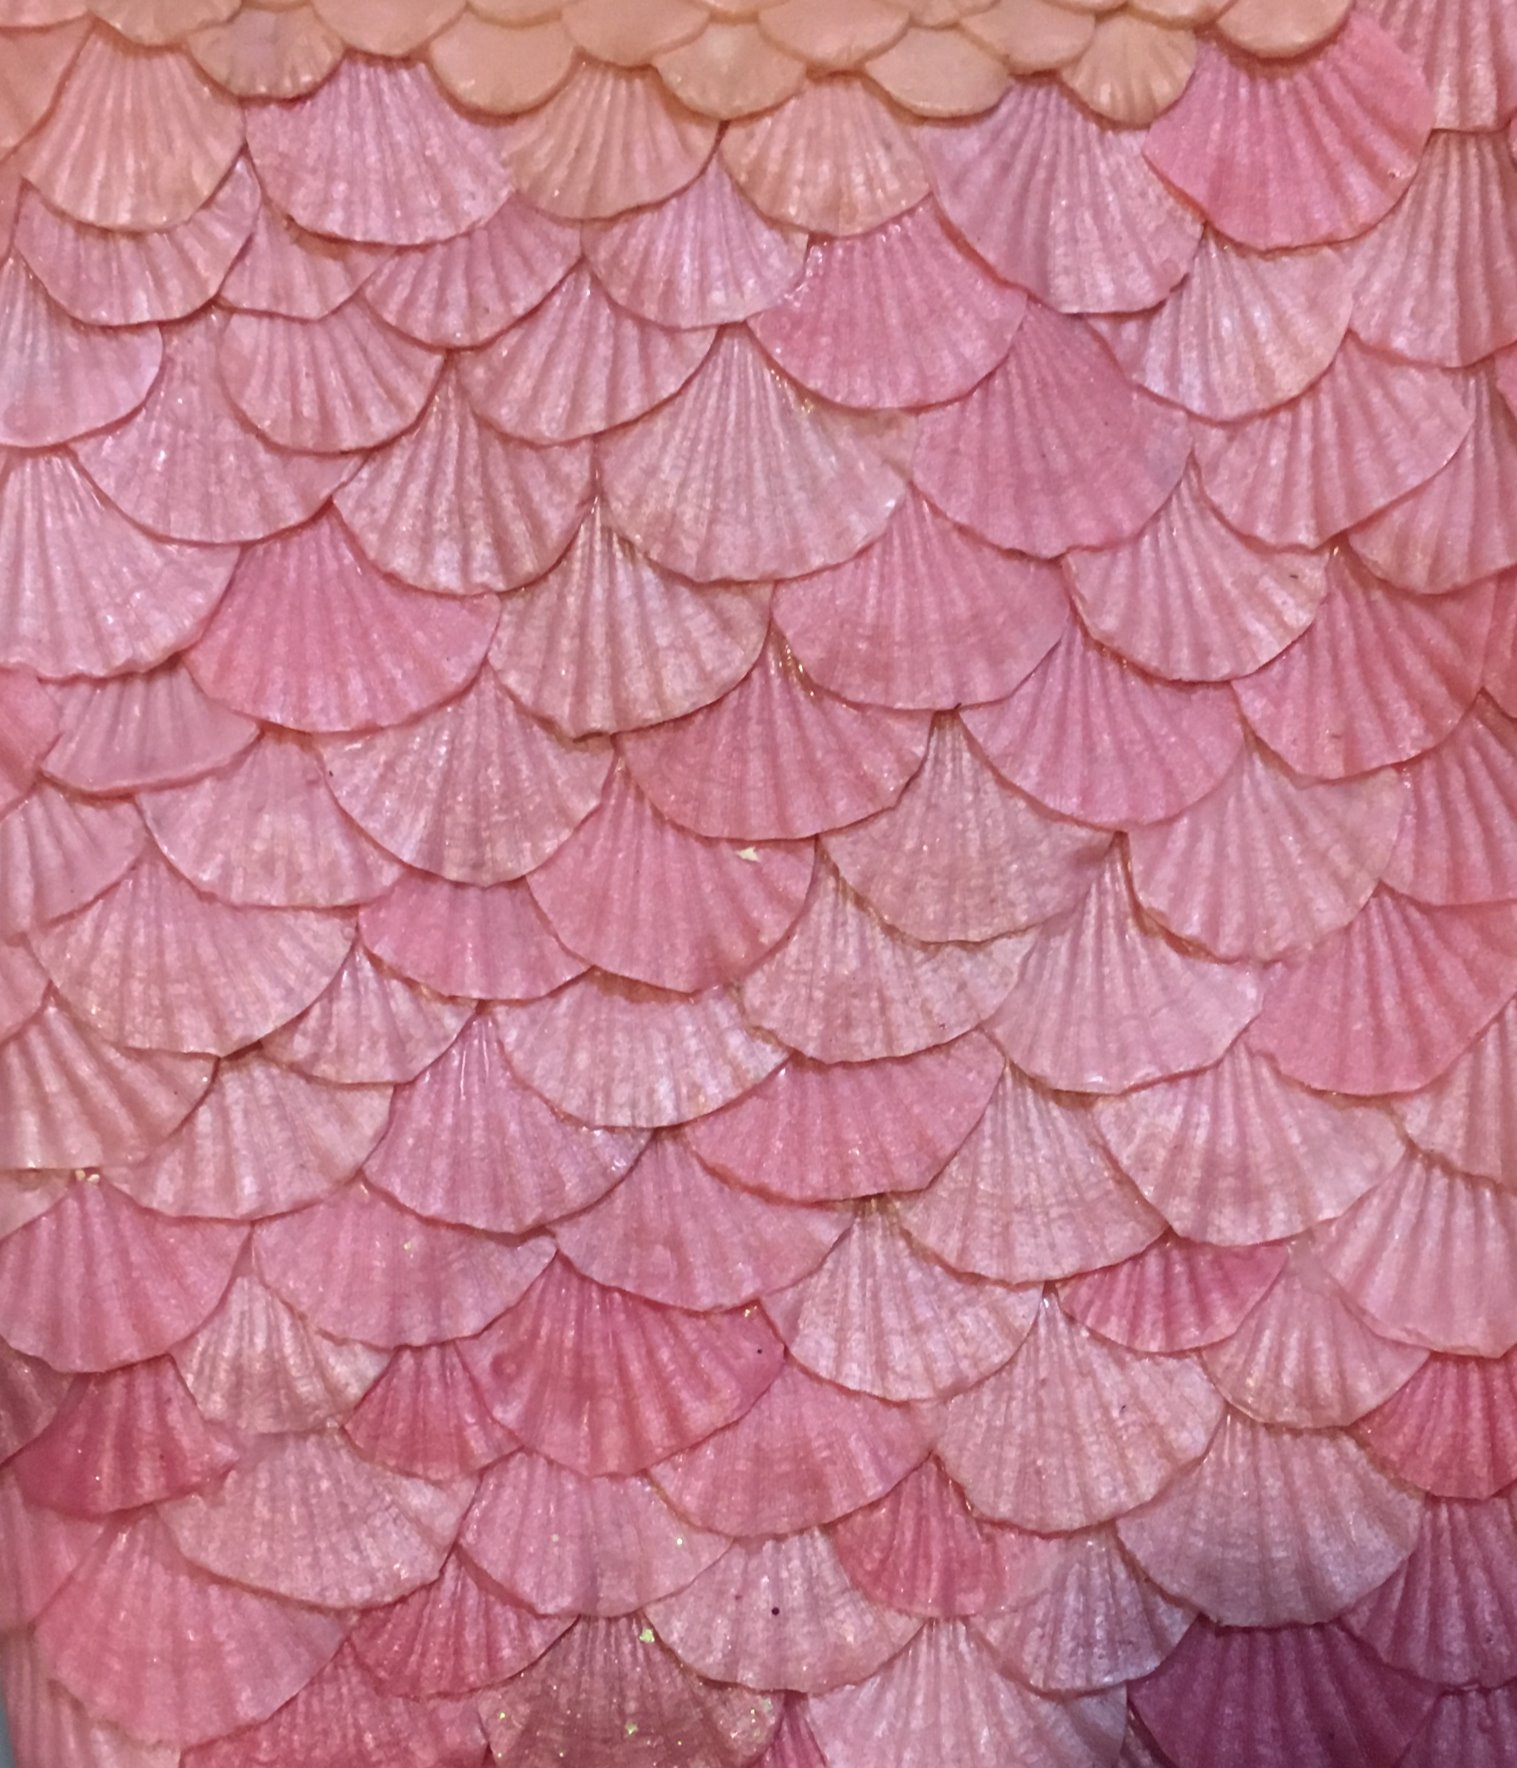 Silicone mermaid scales